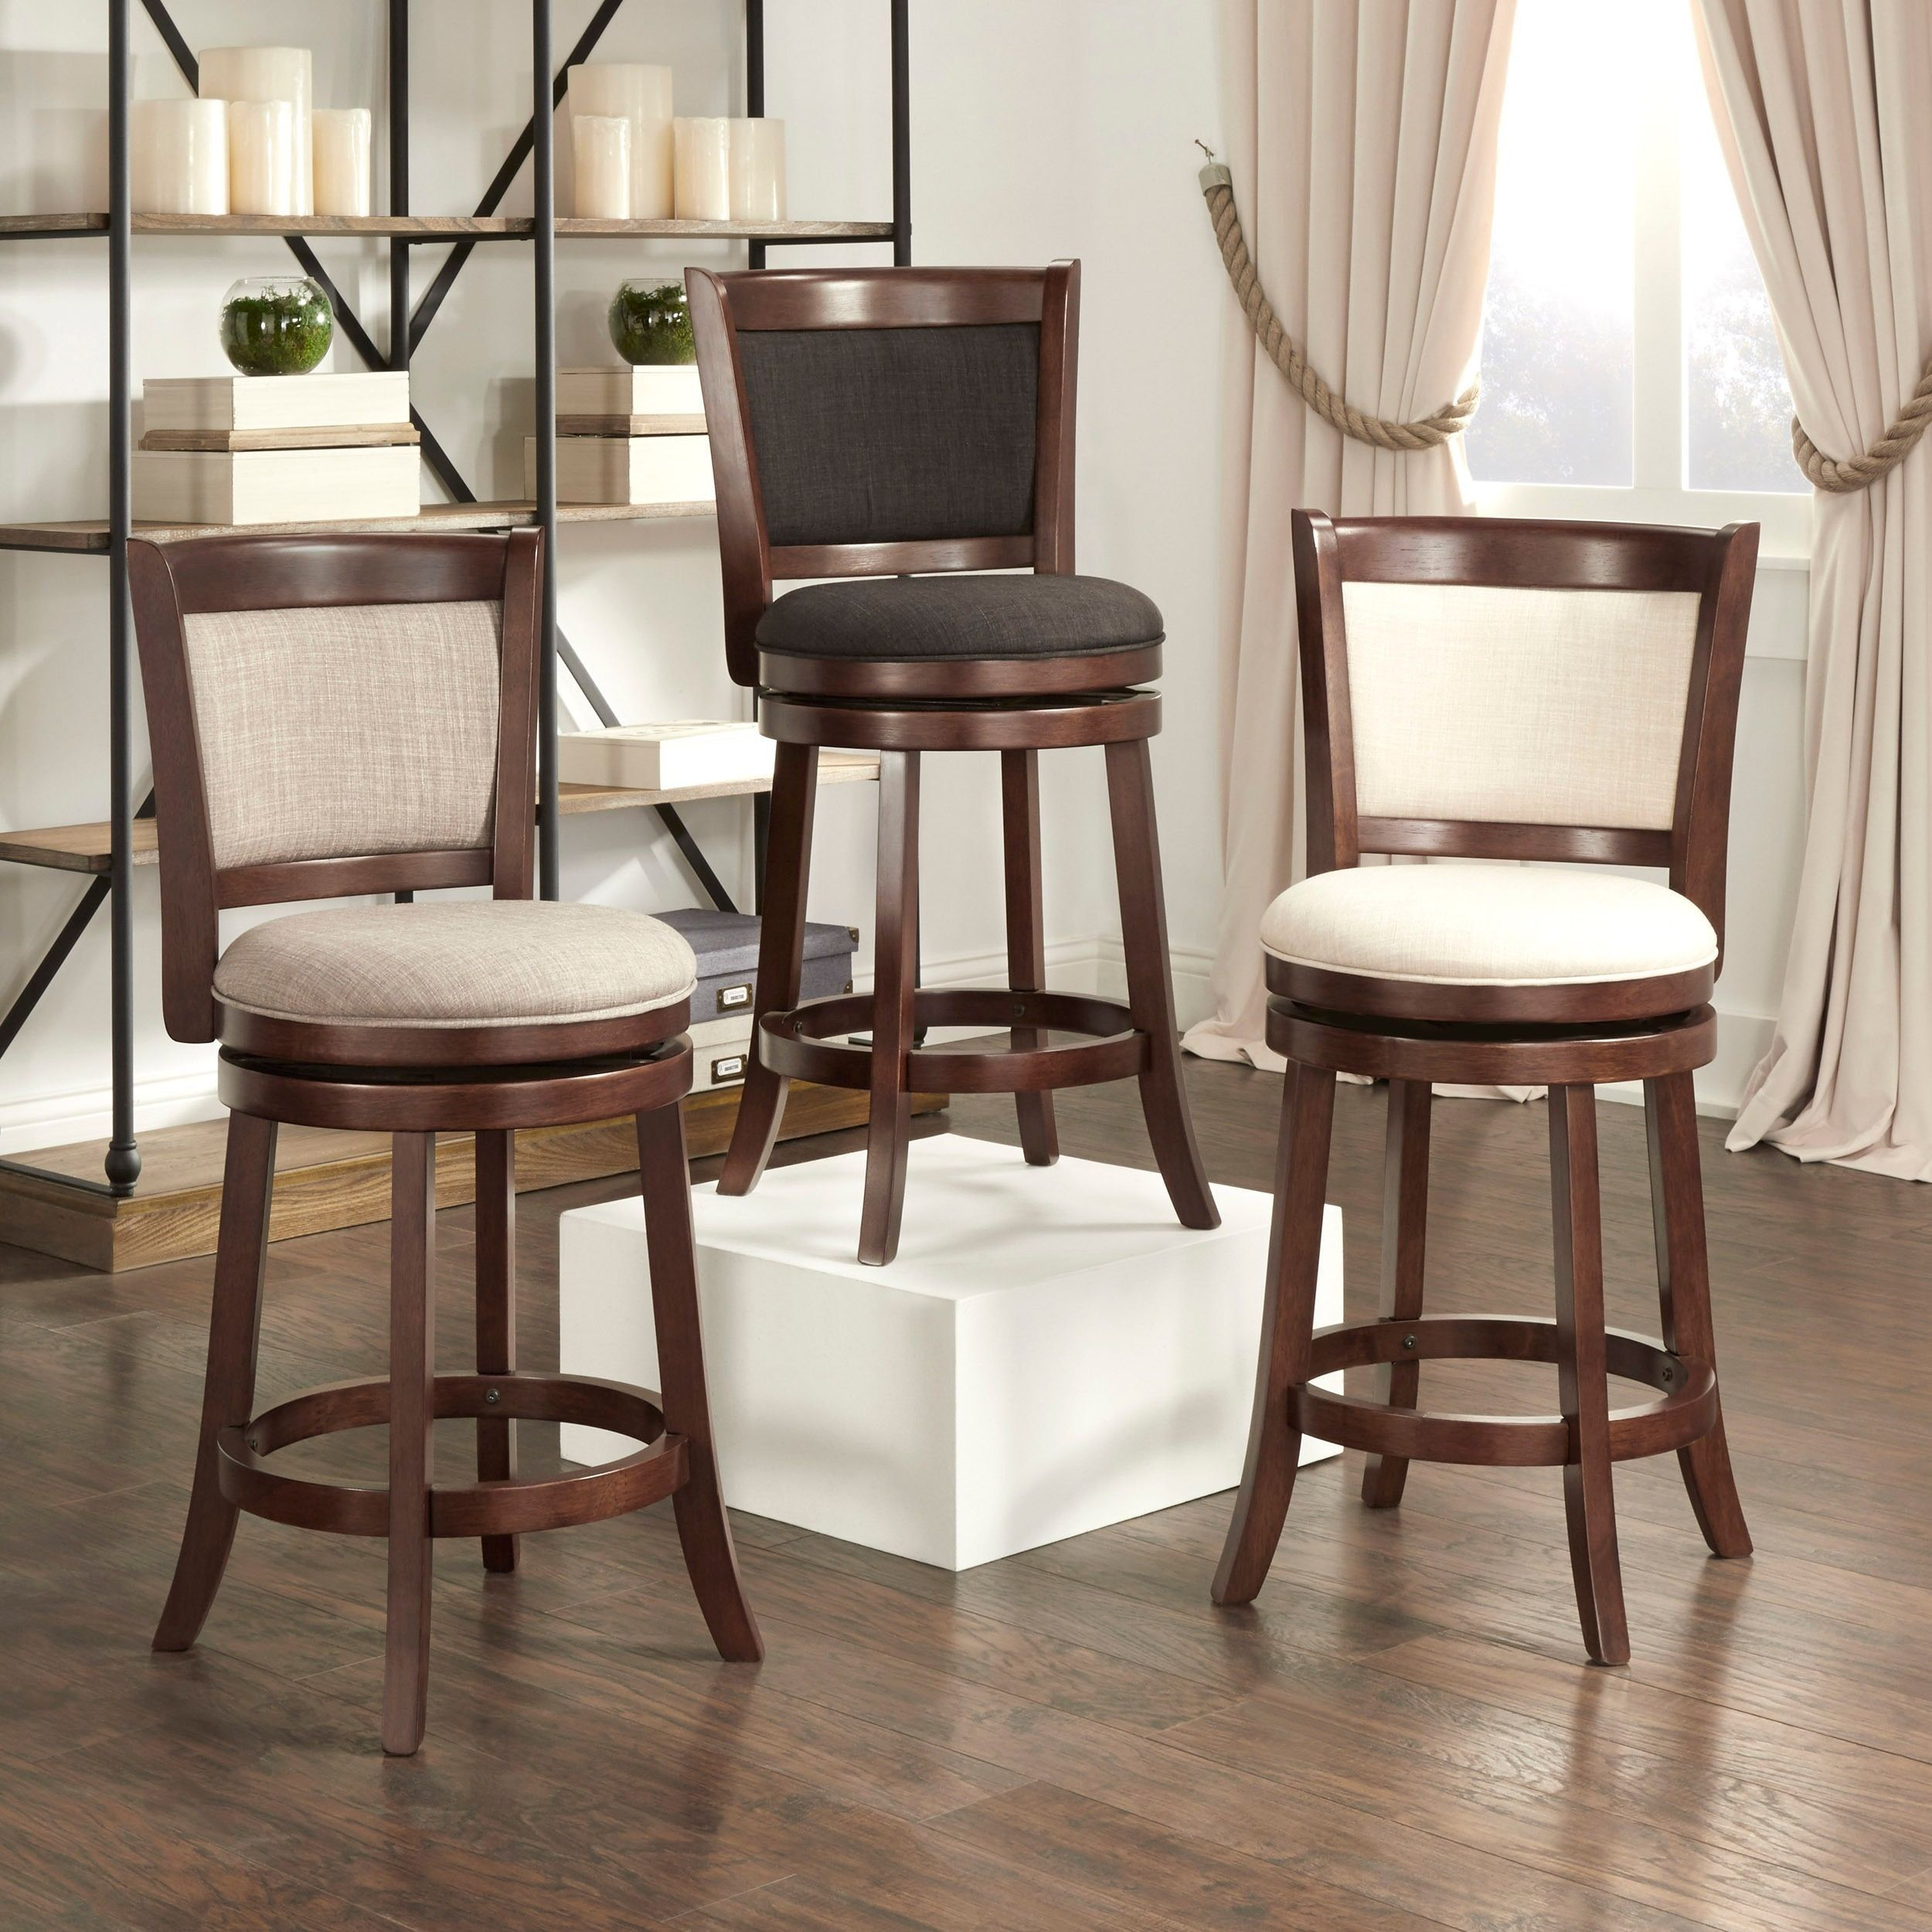 24 inch counter chairs french dining melbourne verona panel back linen swivel height stool by tribecca home gray grey wood